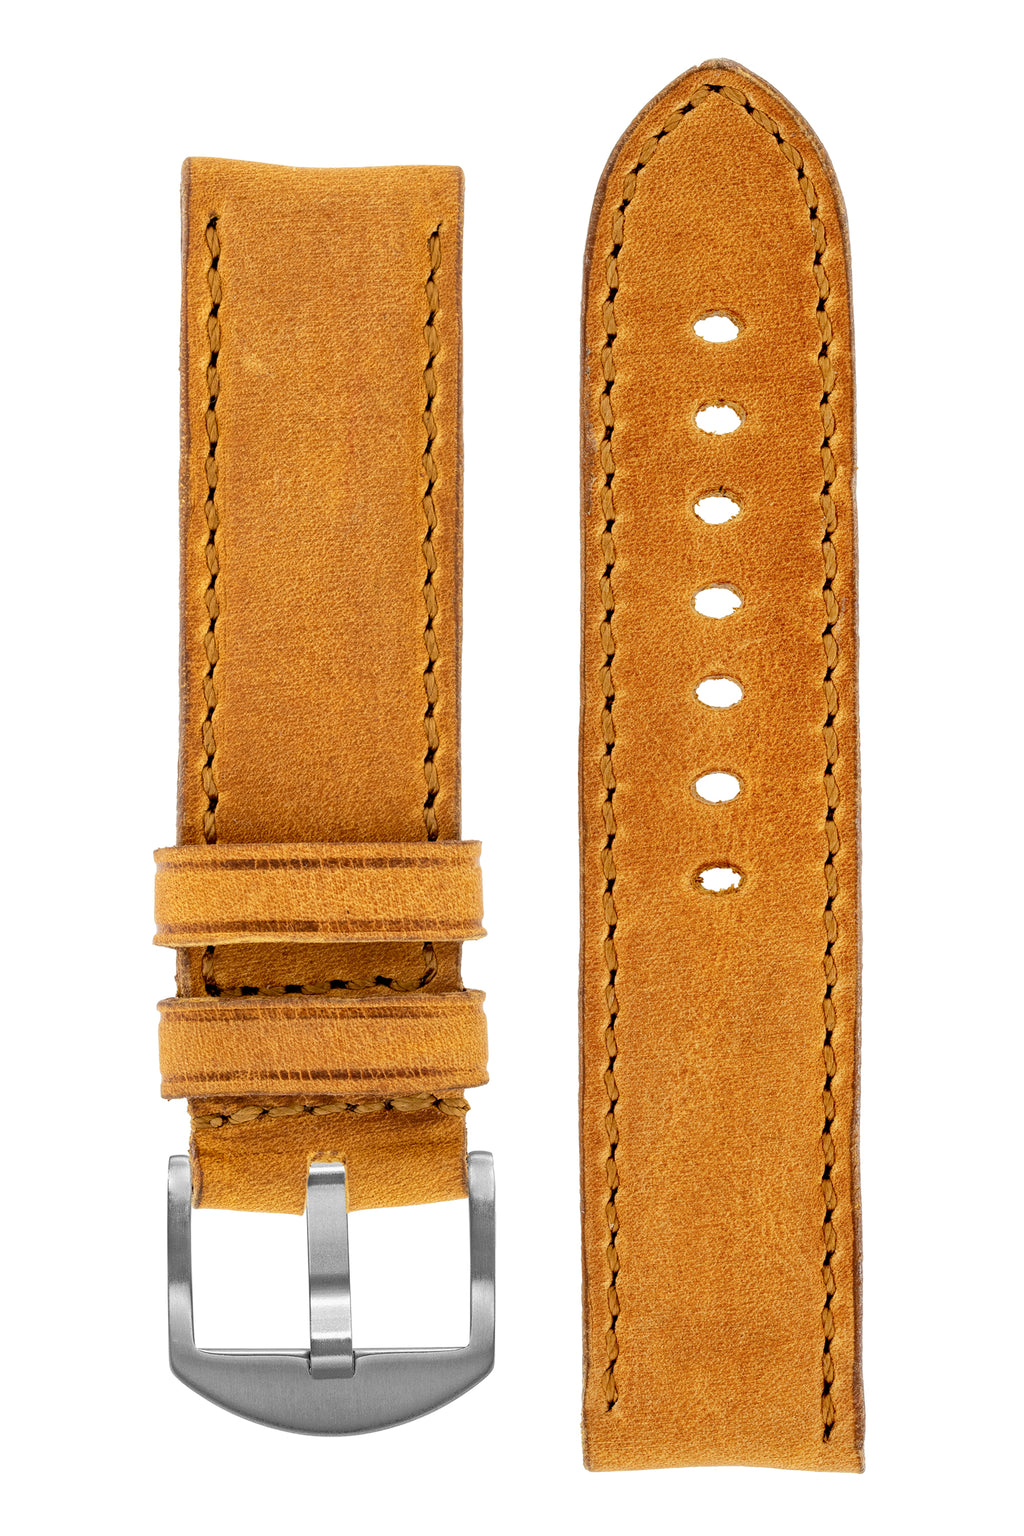 Rios1931 DERBY Genuine Vintage Leather Watch Strap in HONEY